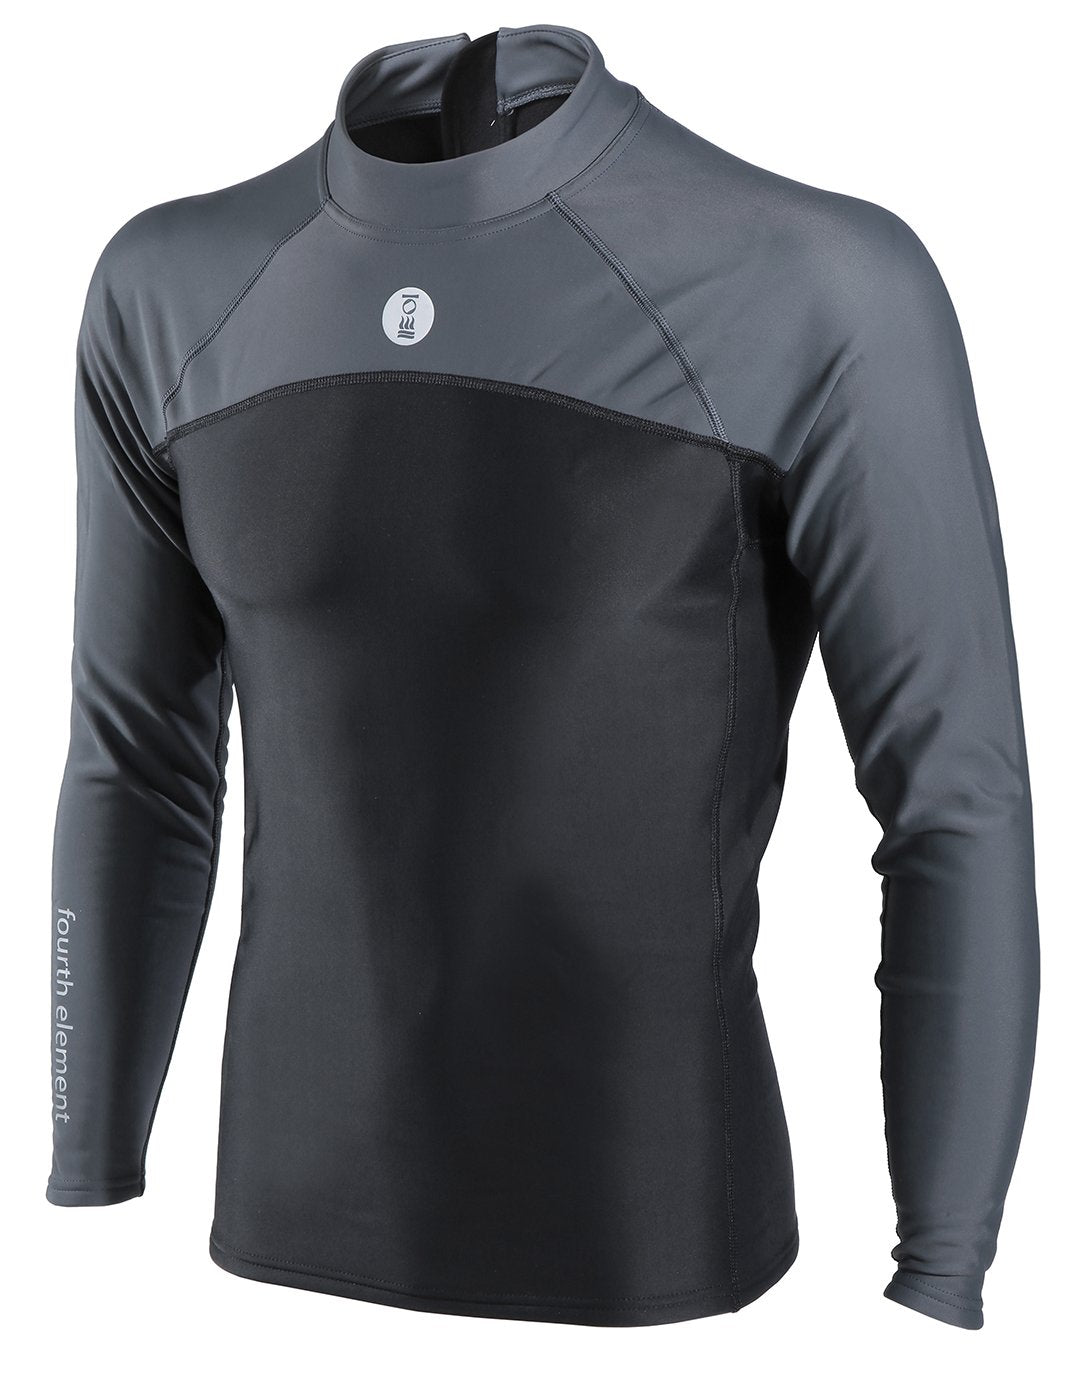 Image of Fourth Element Men's Thermocline LS Top